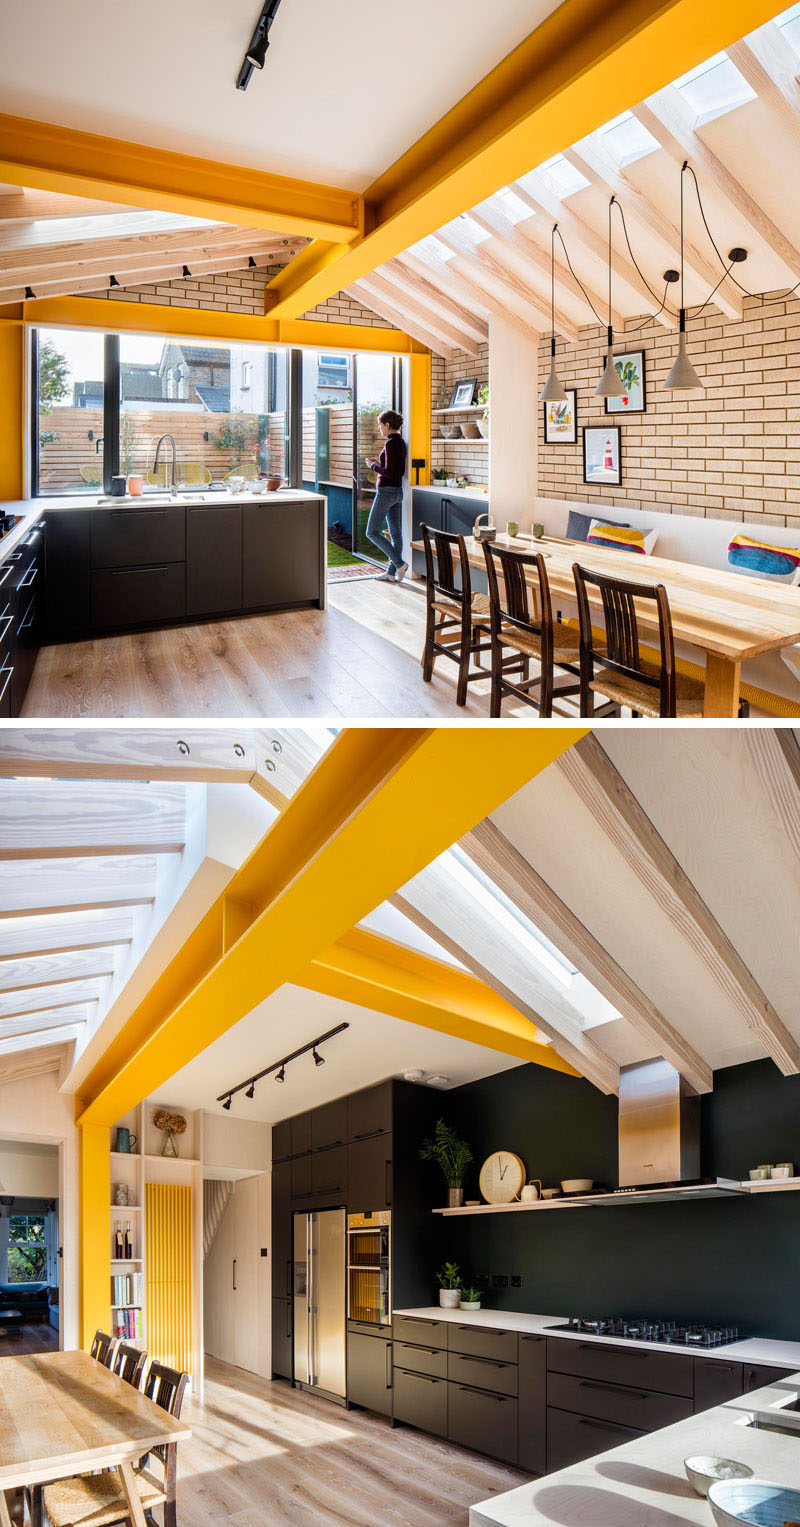 Inside this brick extension by Woodrow Architects, large yellow steel beams provide support, while unconnected rafters sail over with steel plate apex connections allowing the design to do away with any ridge beam.# #YellowBeams #BlackKitchen #BrickExtension Visit Woodrow Architect's website here > https://www.wdrw.co.uk